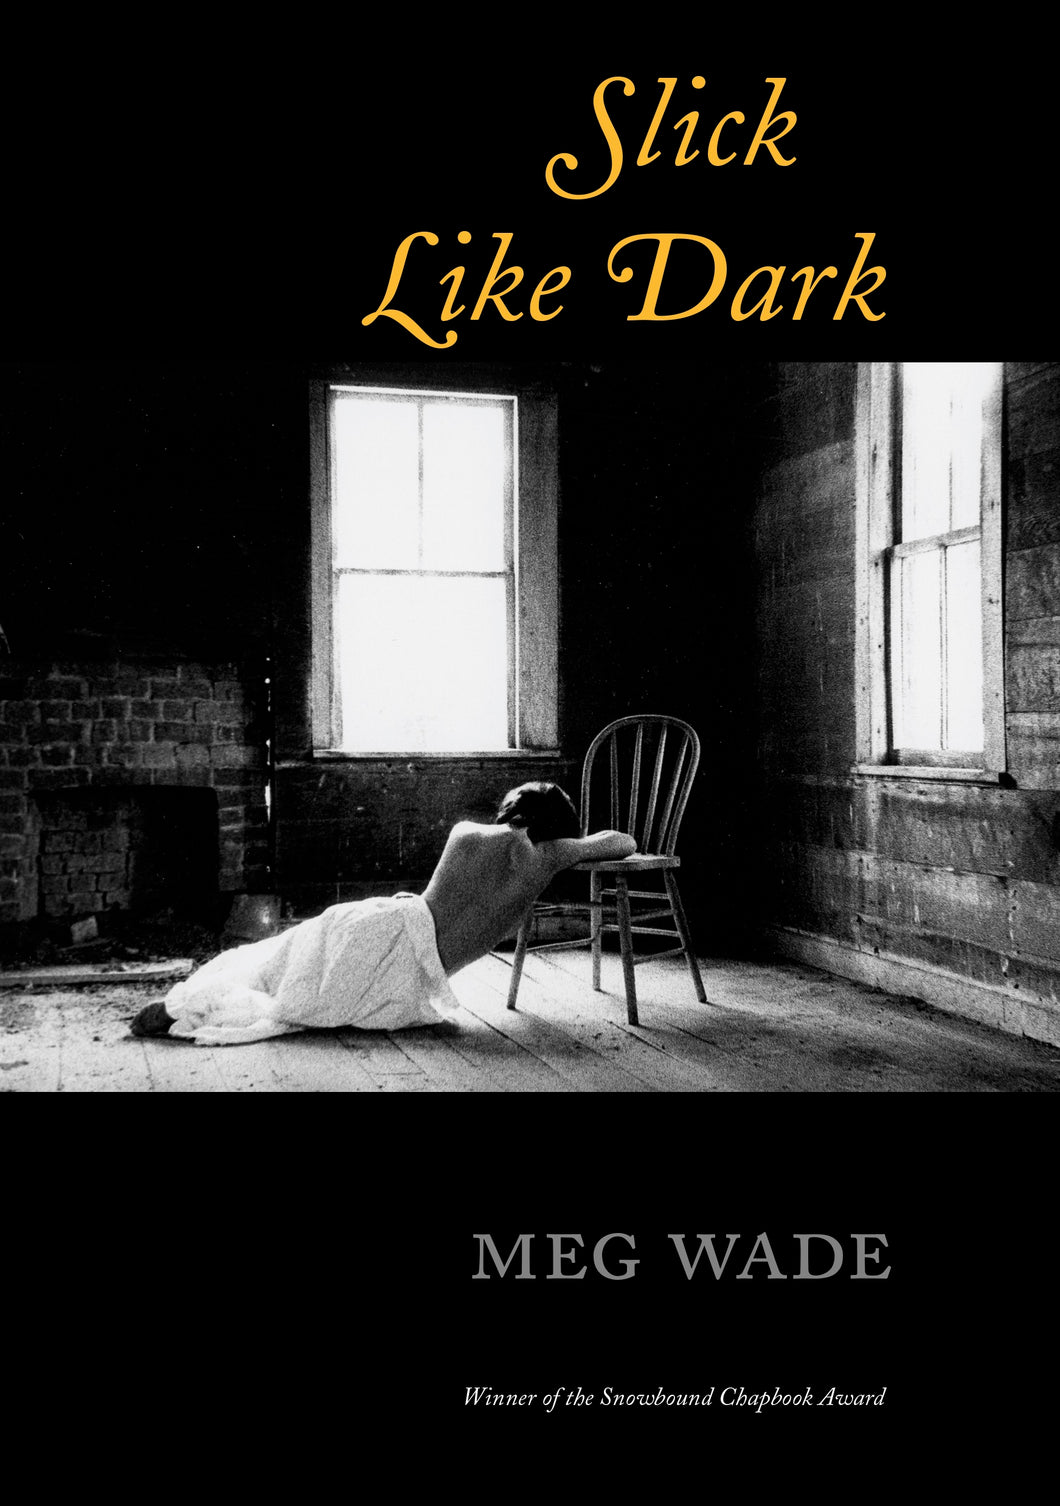 Slick Like Dark by Meg Wade